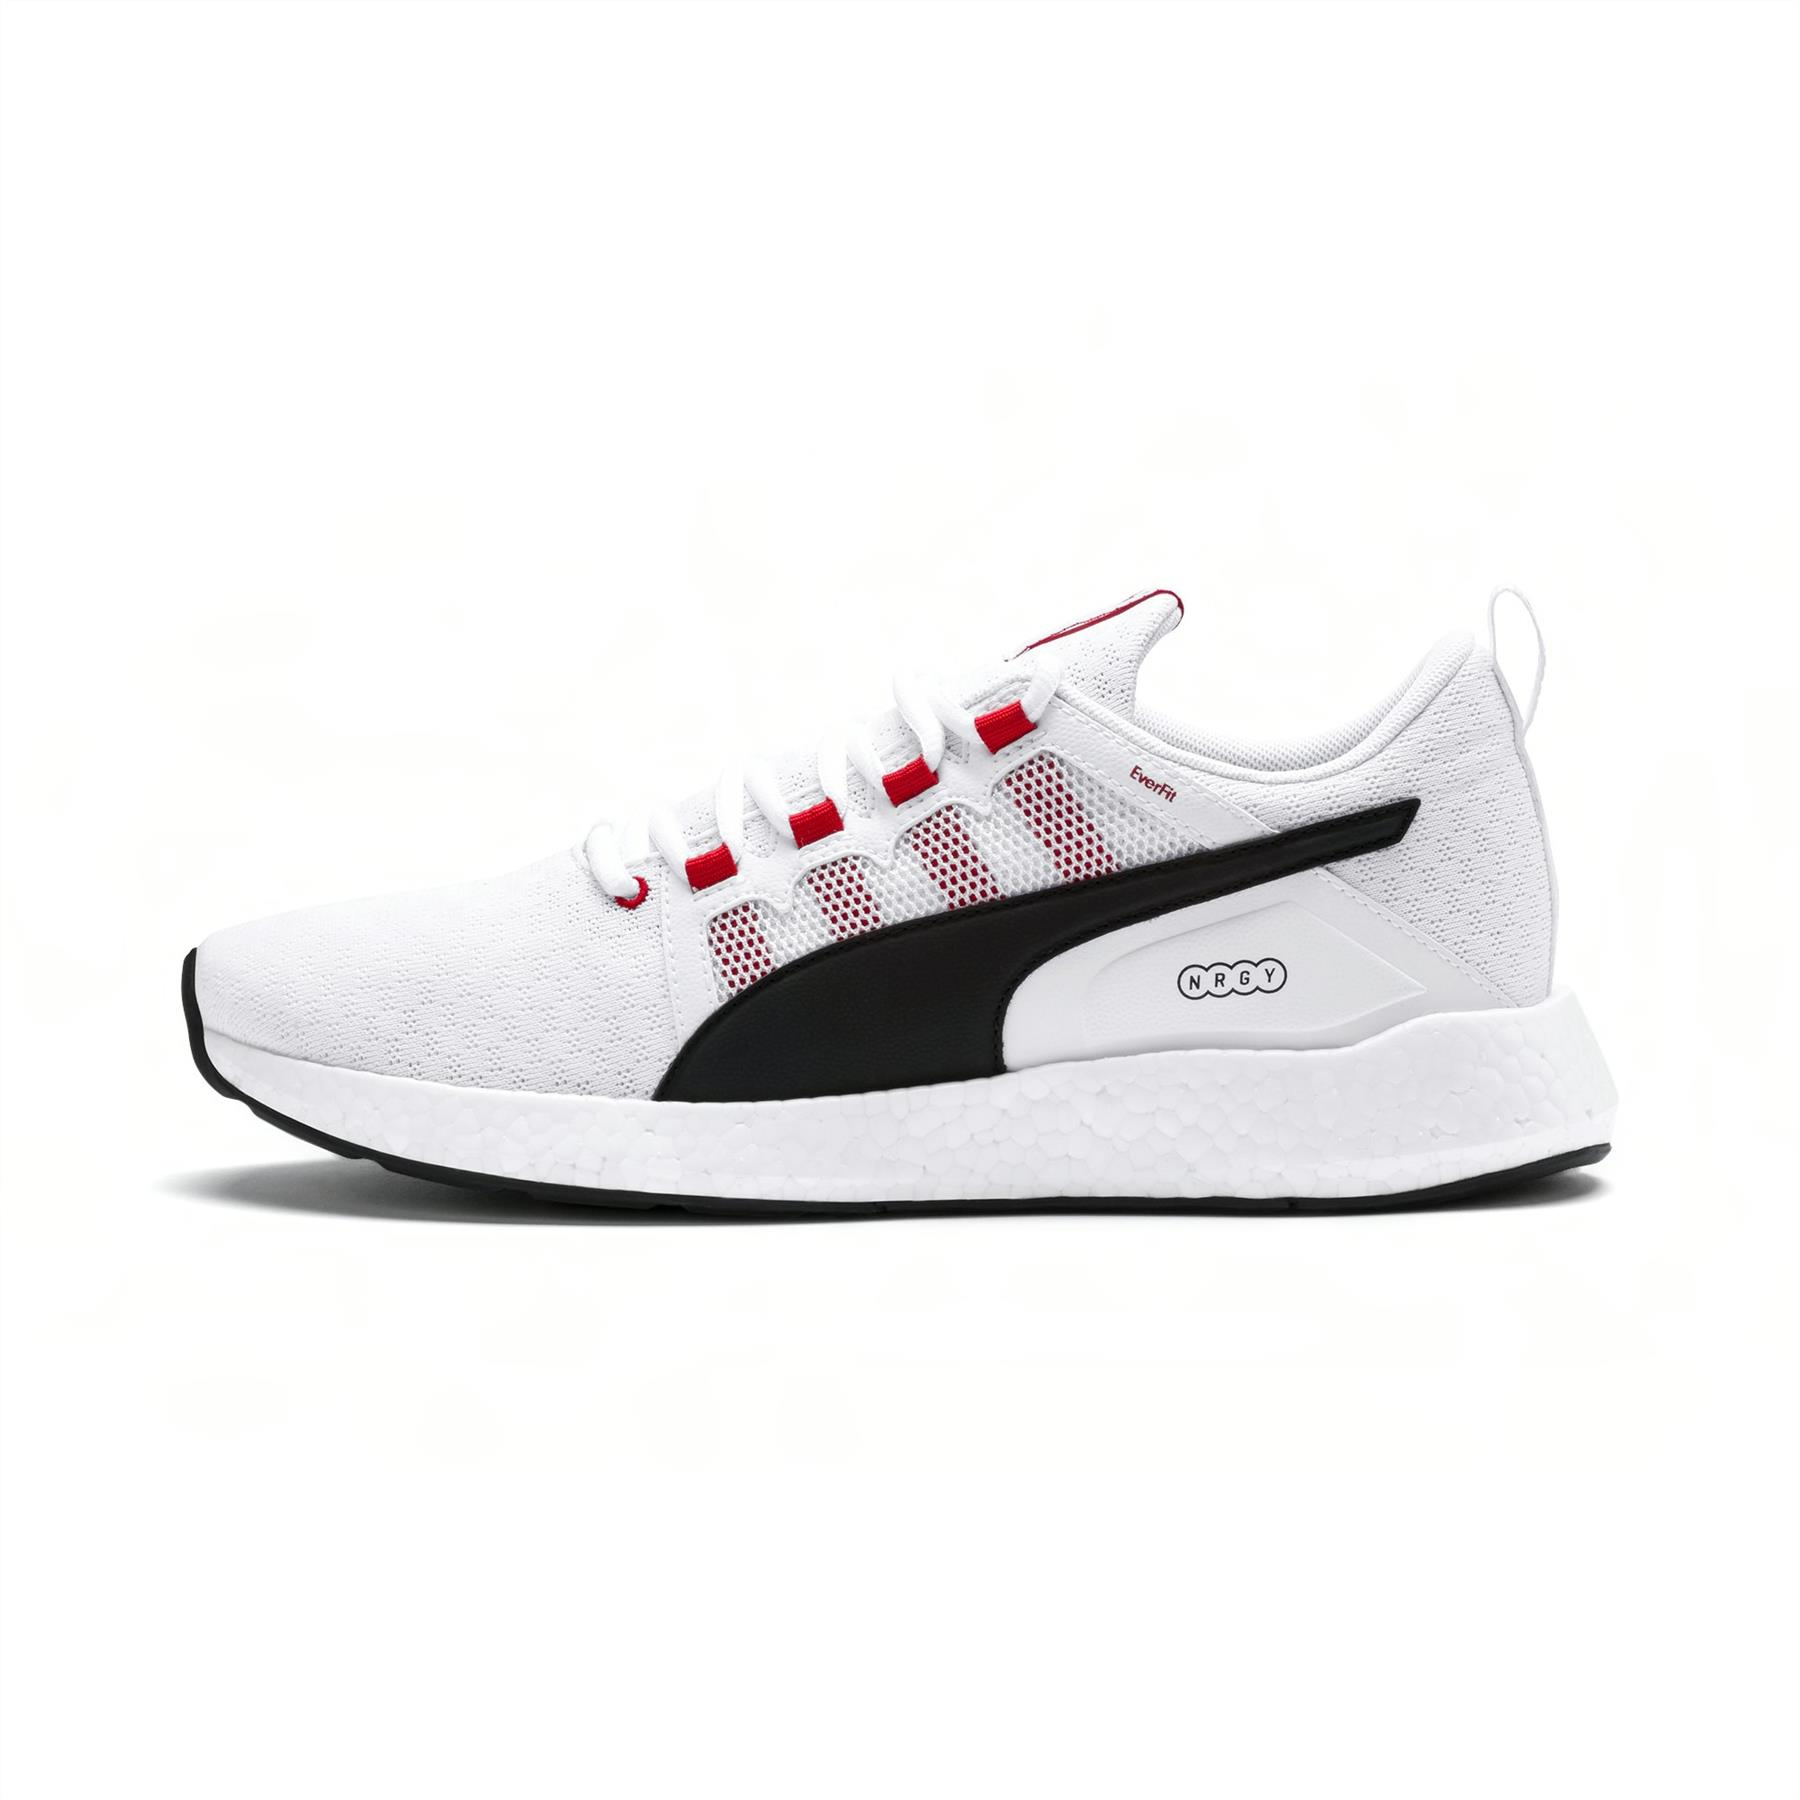 Details about PUMA NRGY NEKO TURBO TRAINERS FOAM RUNNING SHOES SNEAKERS COMFY GYM MEN'S ACTIVE